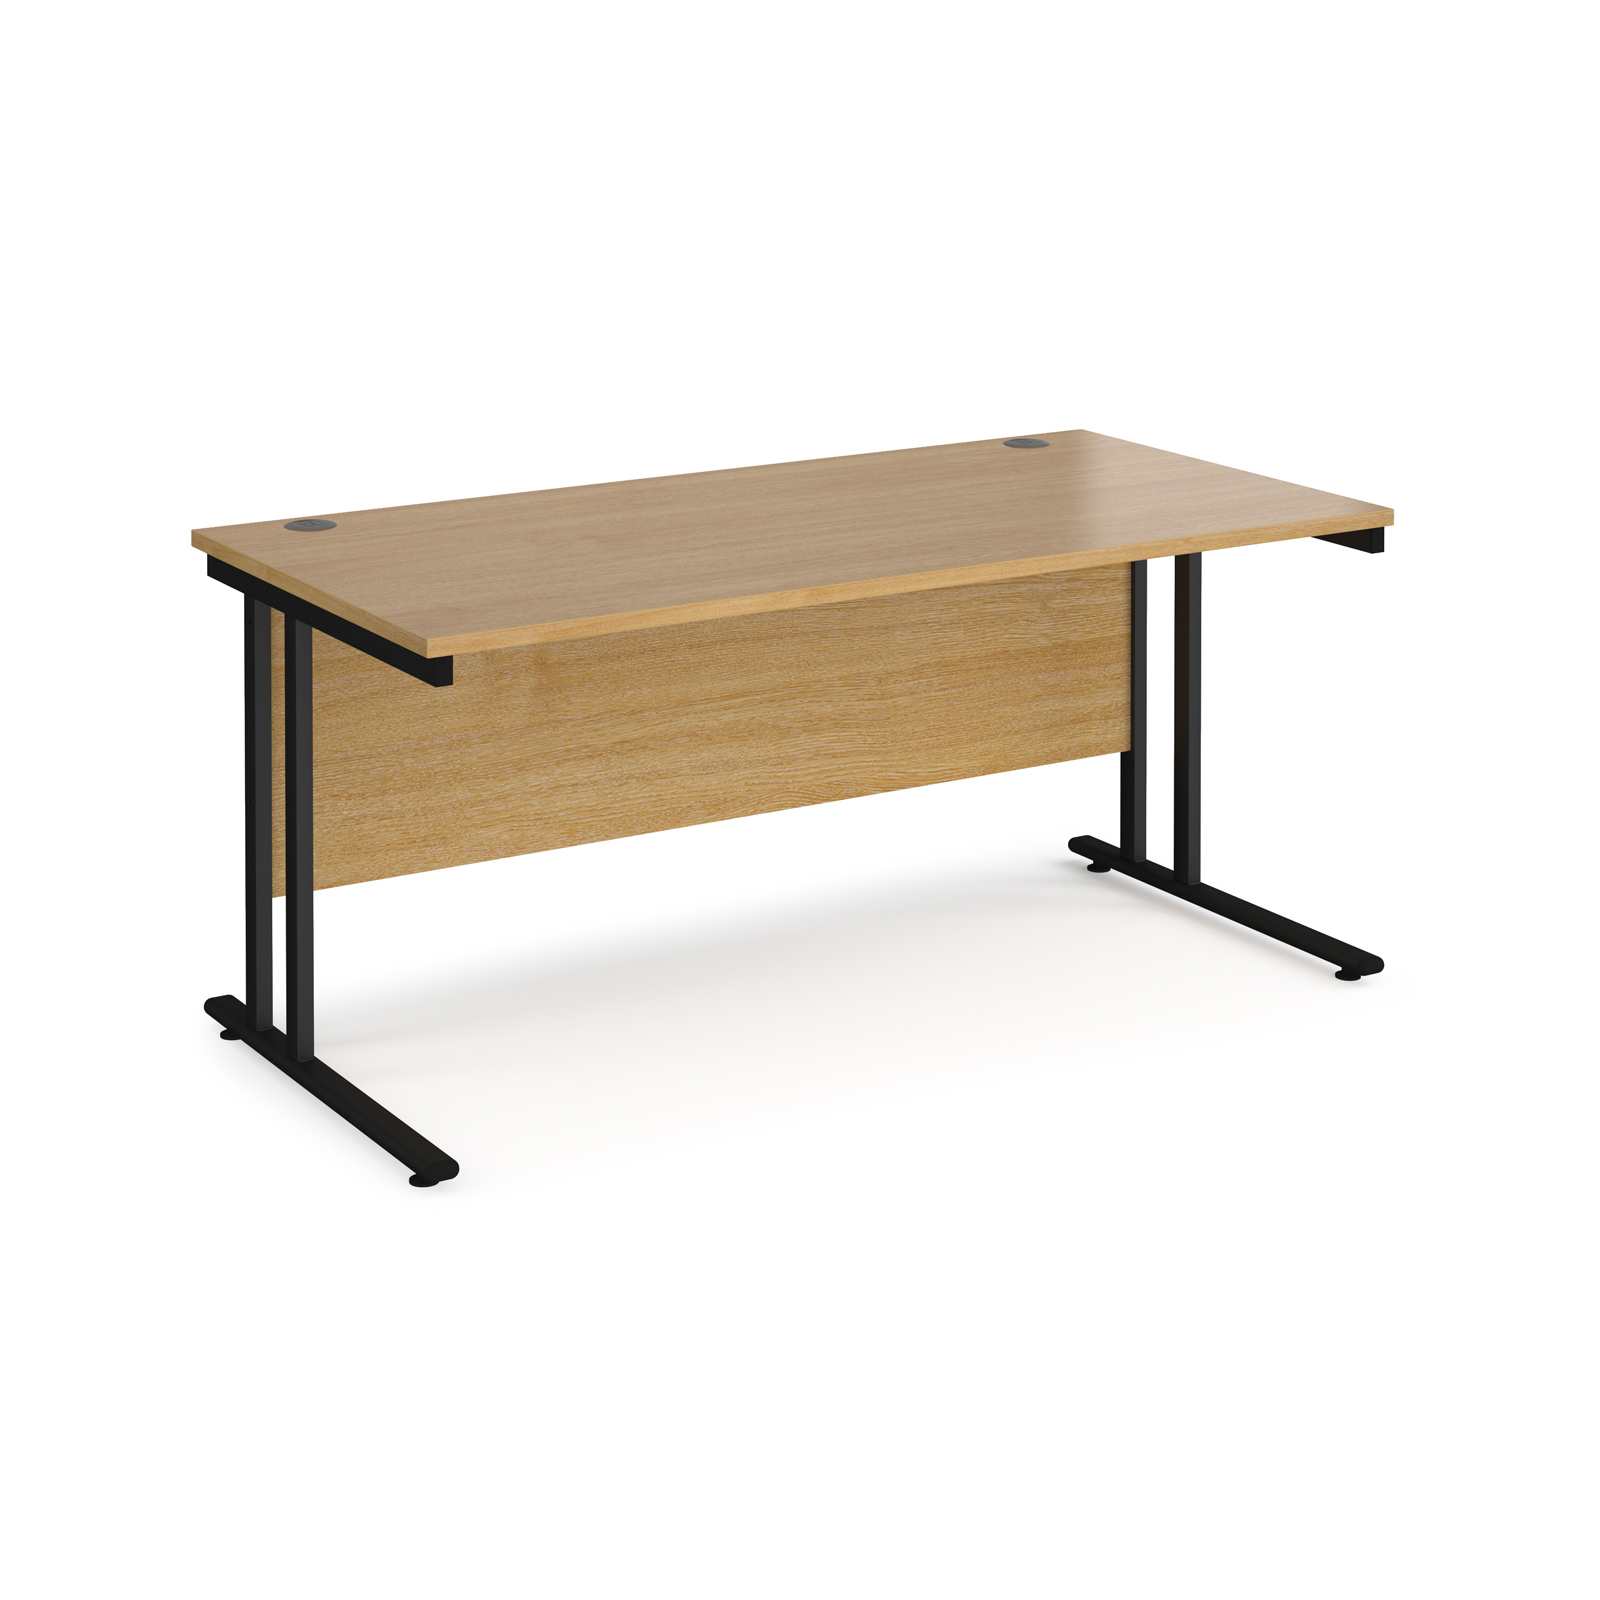 Maestro 25 straight desk 1600mm x 800mm - black cantilever leg frame, oak top